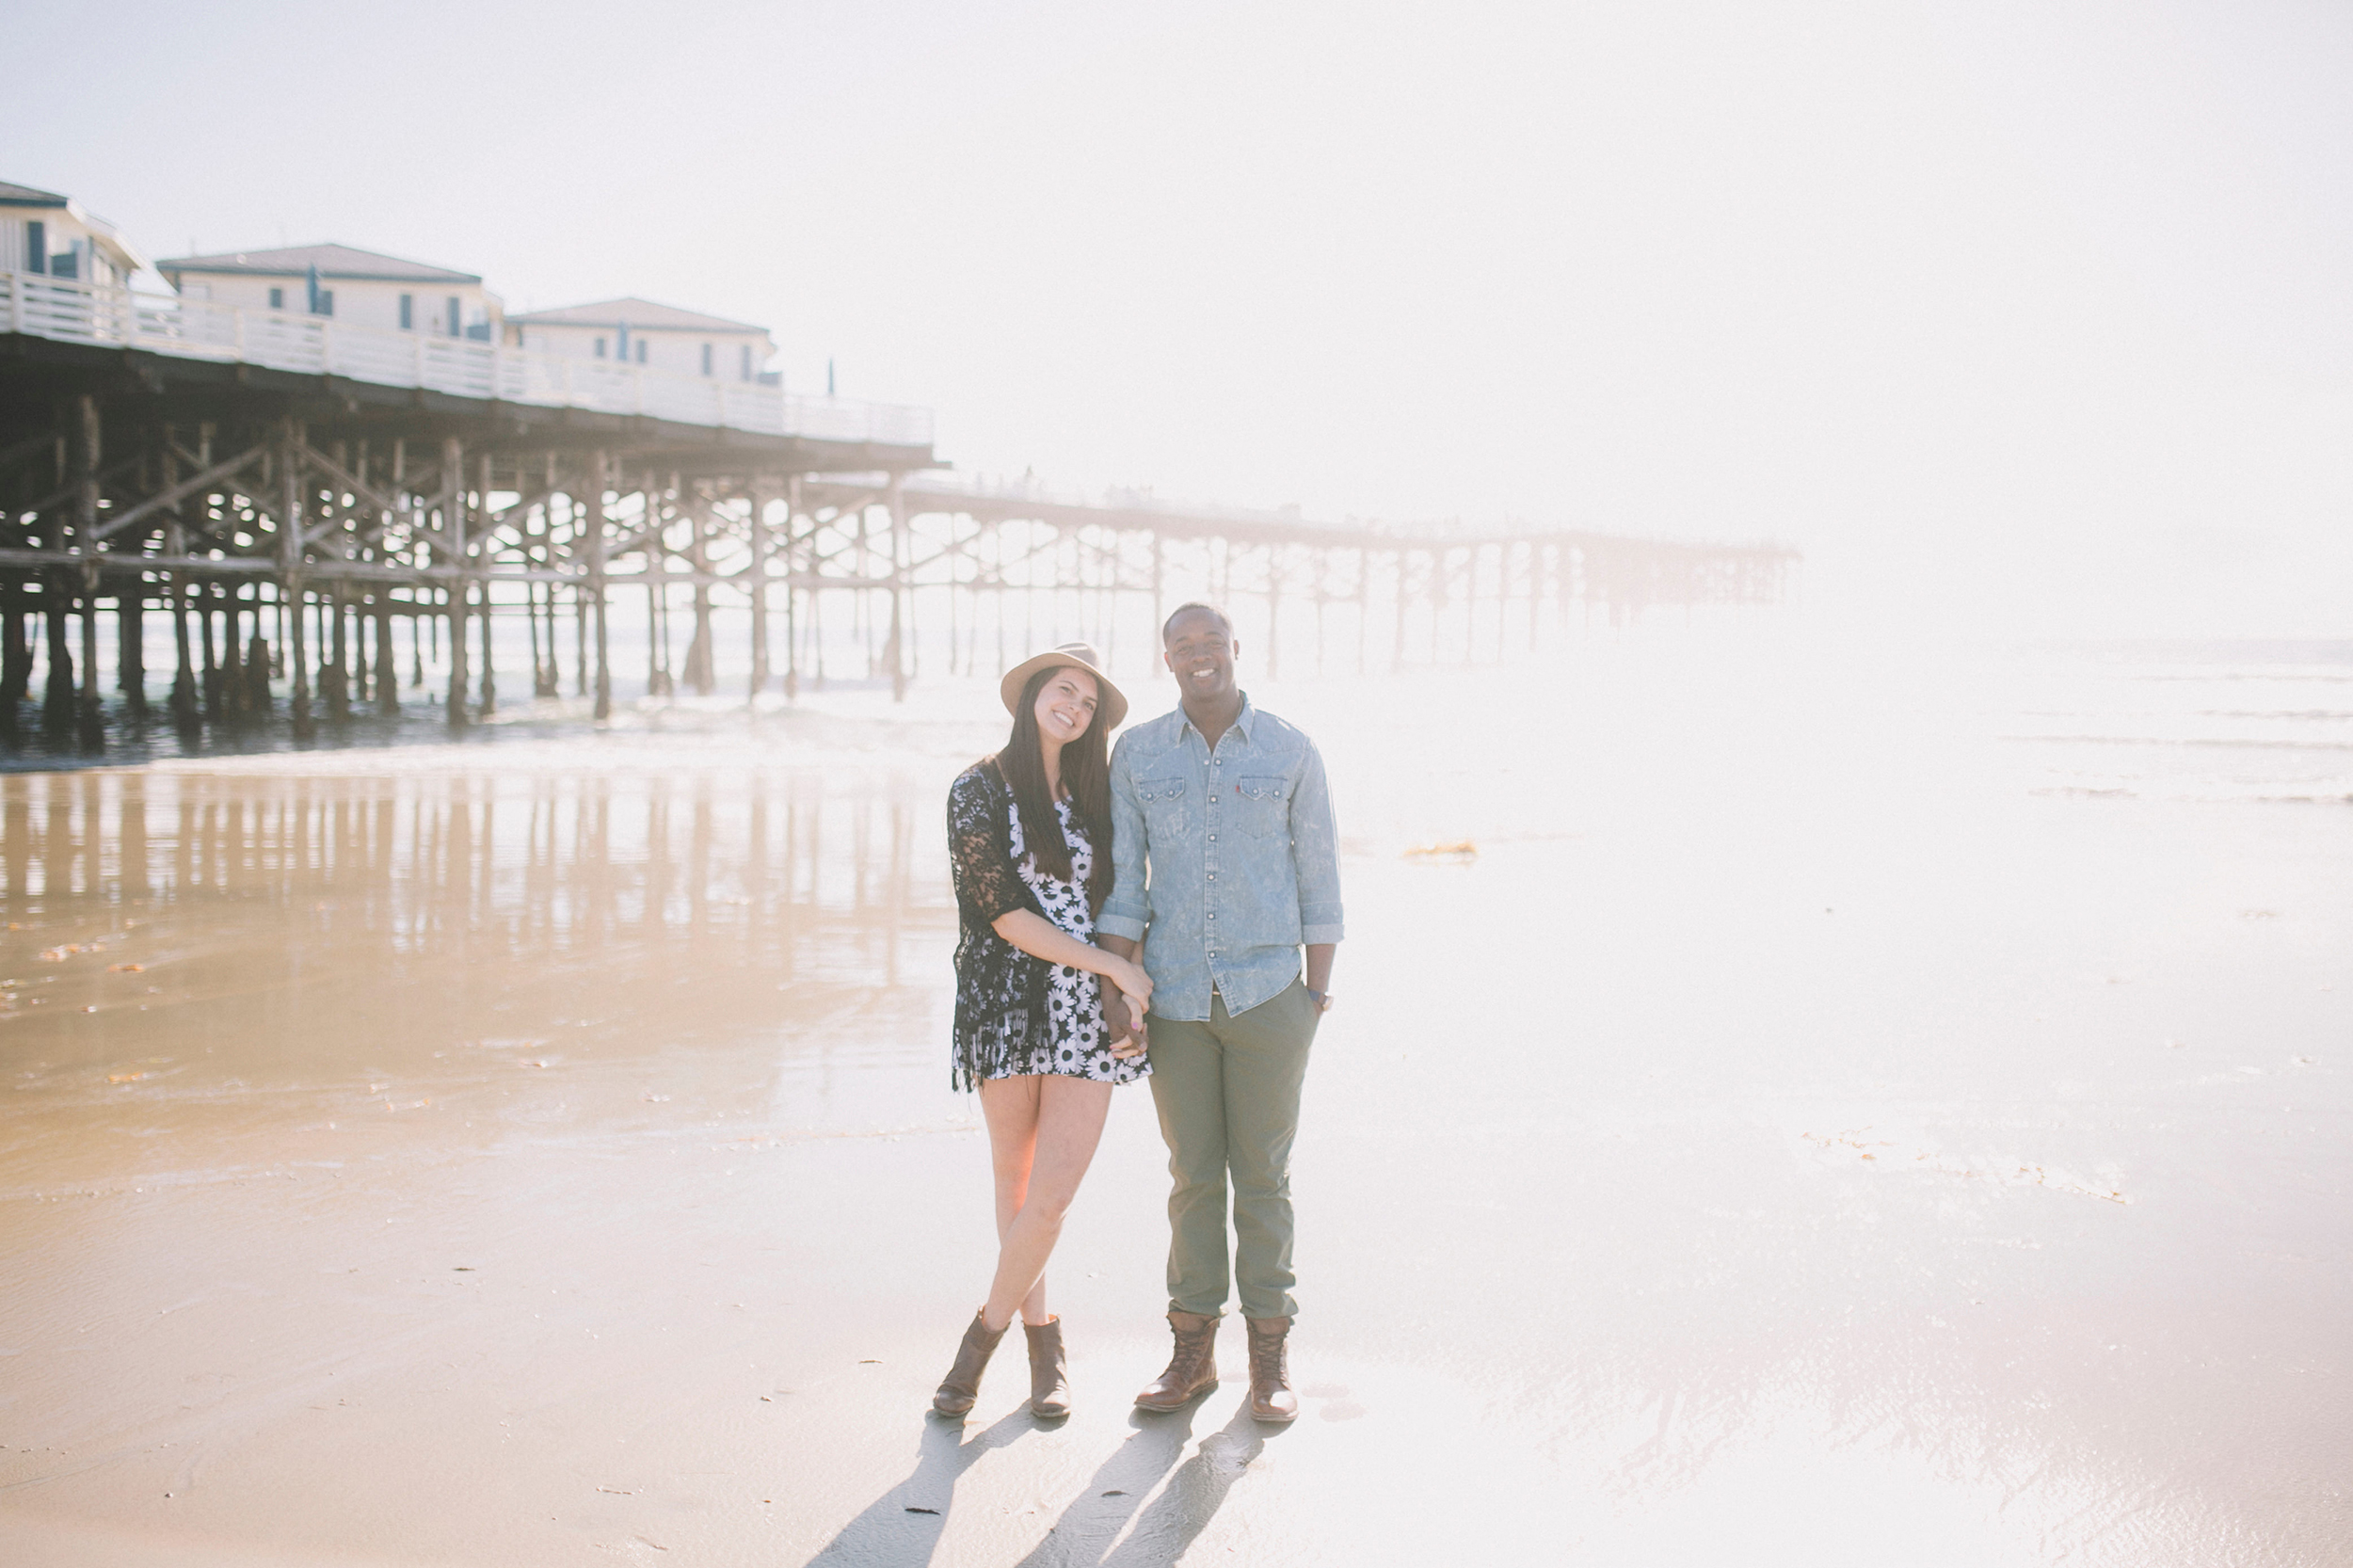 Colby-and-Jess-Adventure-Engagement-Photography-Torrey-Pines-La-Jolla-California32.jpg